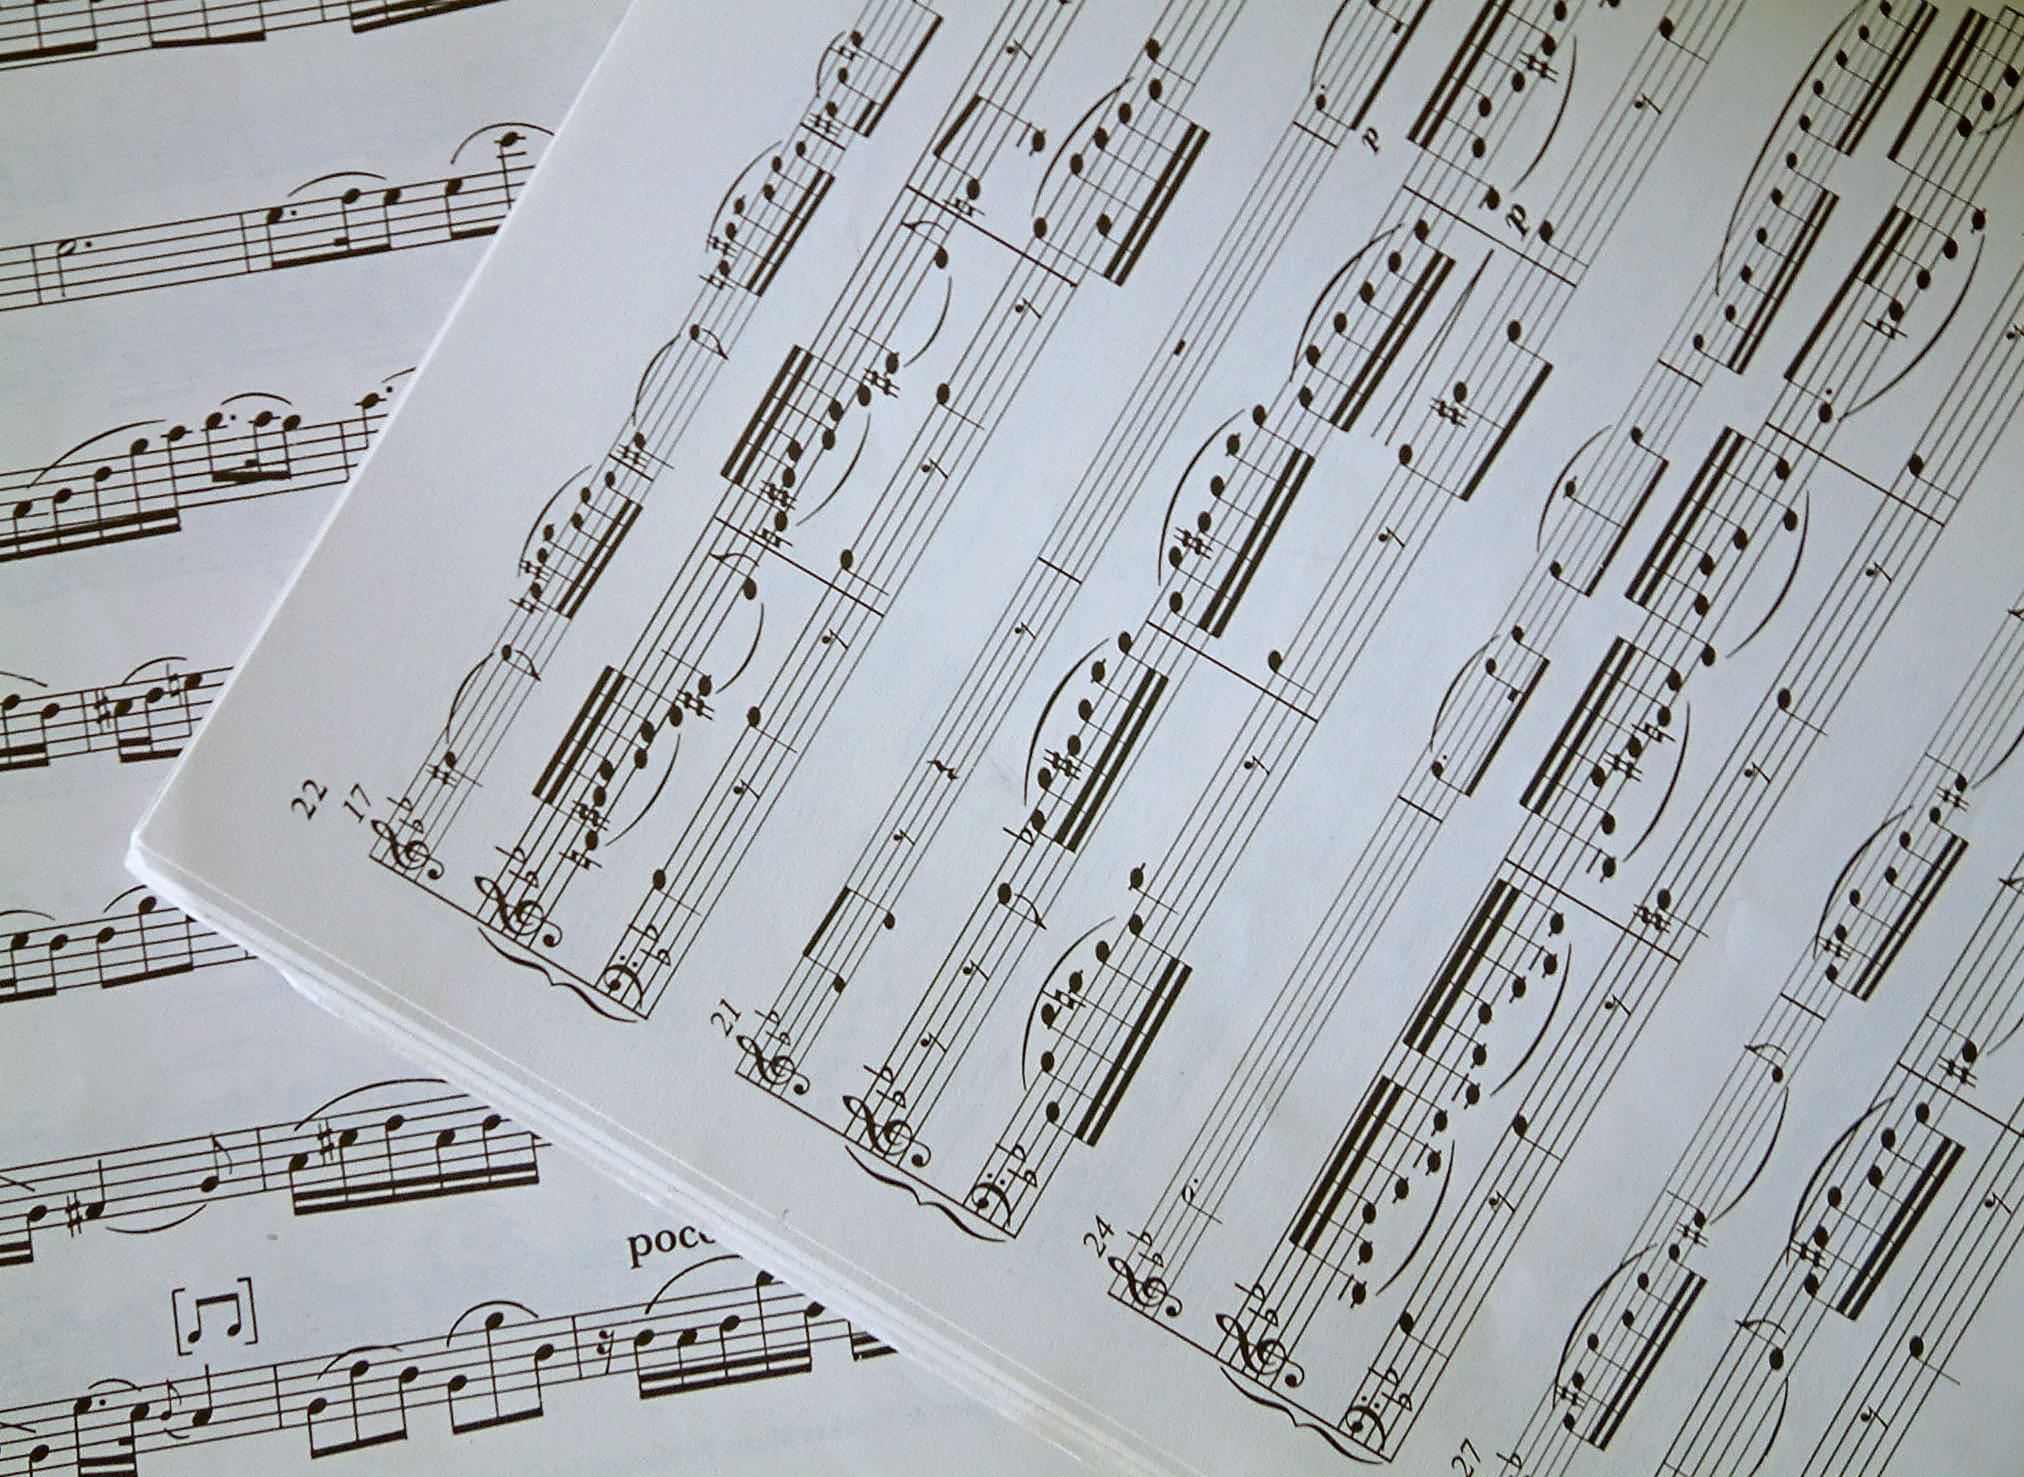 sheet music 2 wallpaper - photo #36